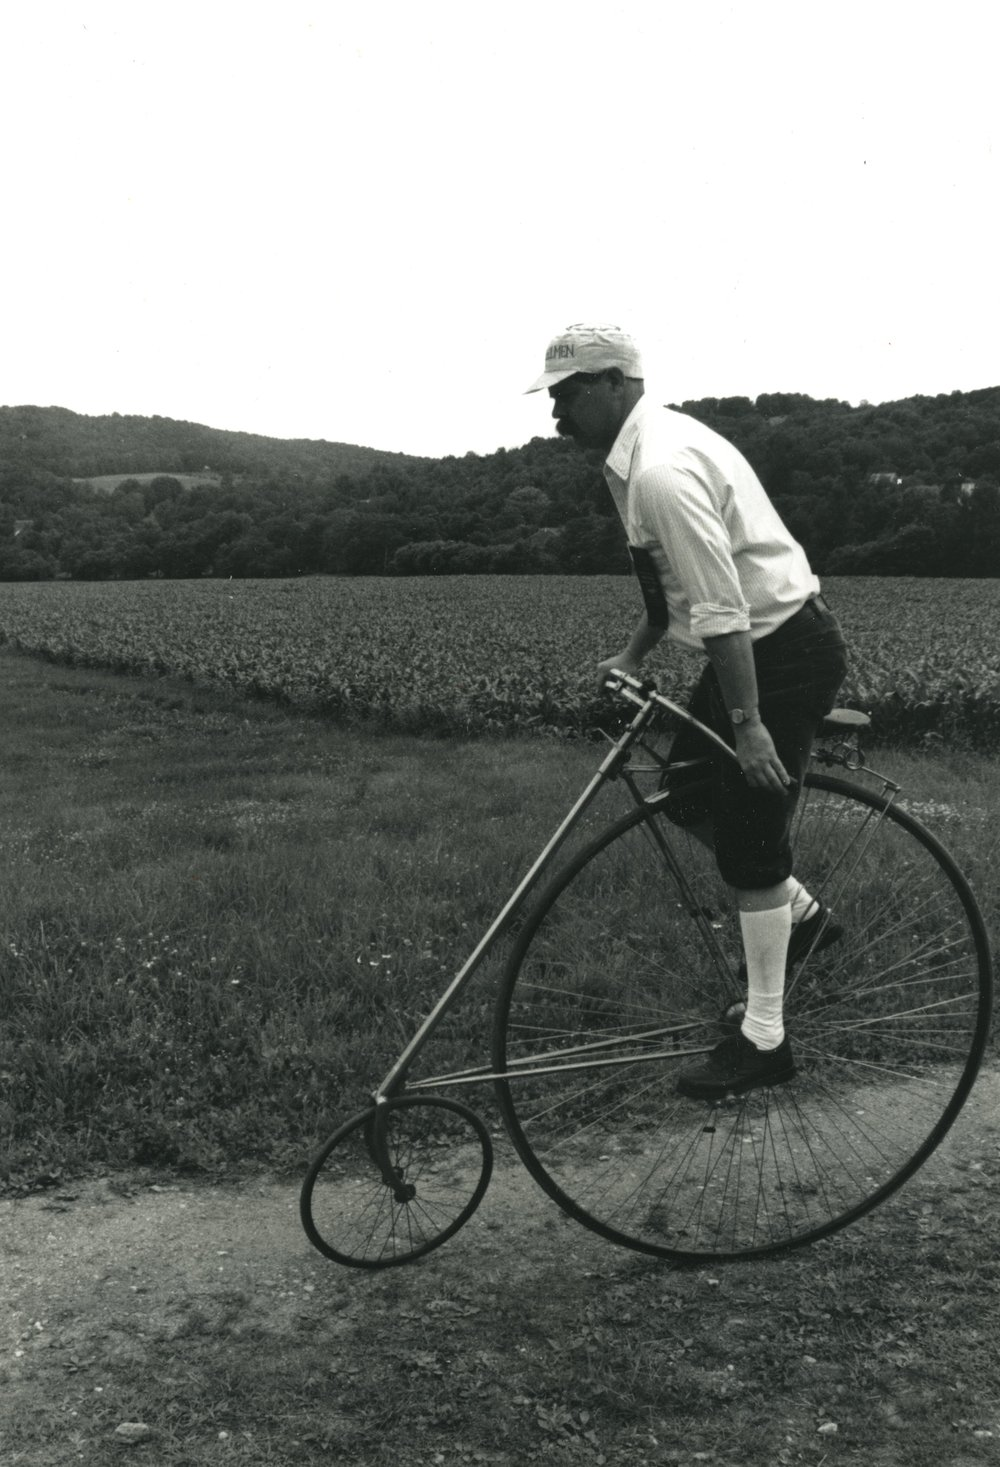 The bicycle lives on… - A bicyclist in 1990s on an American Star at the Billings Farm & Museum.